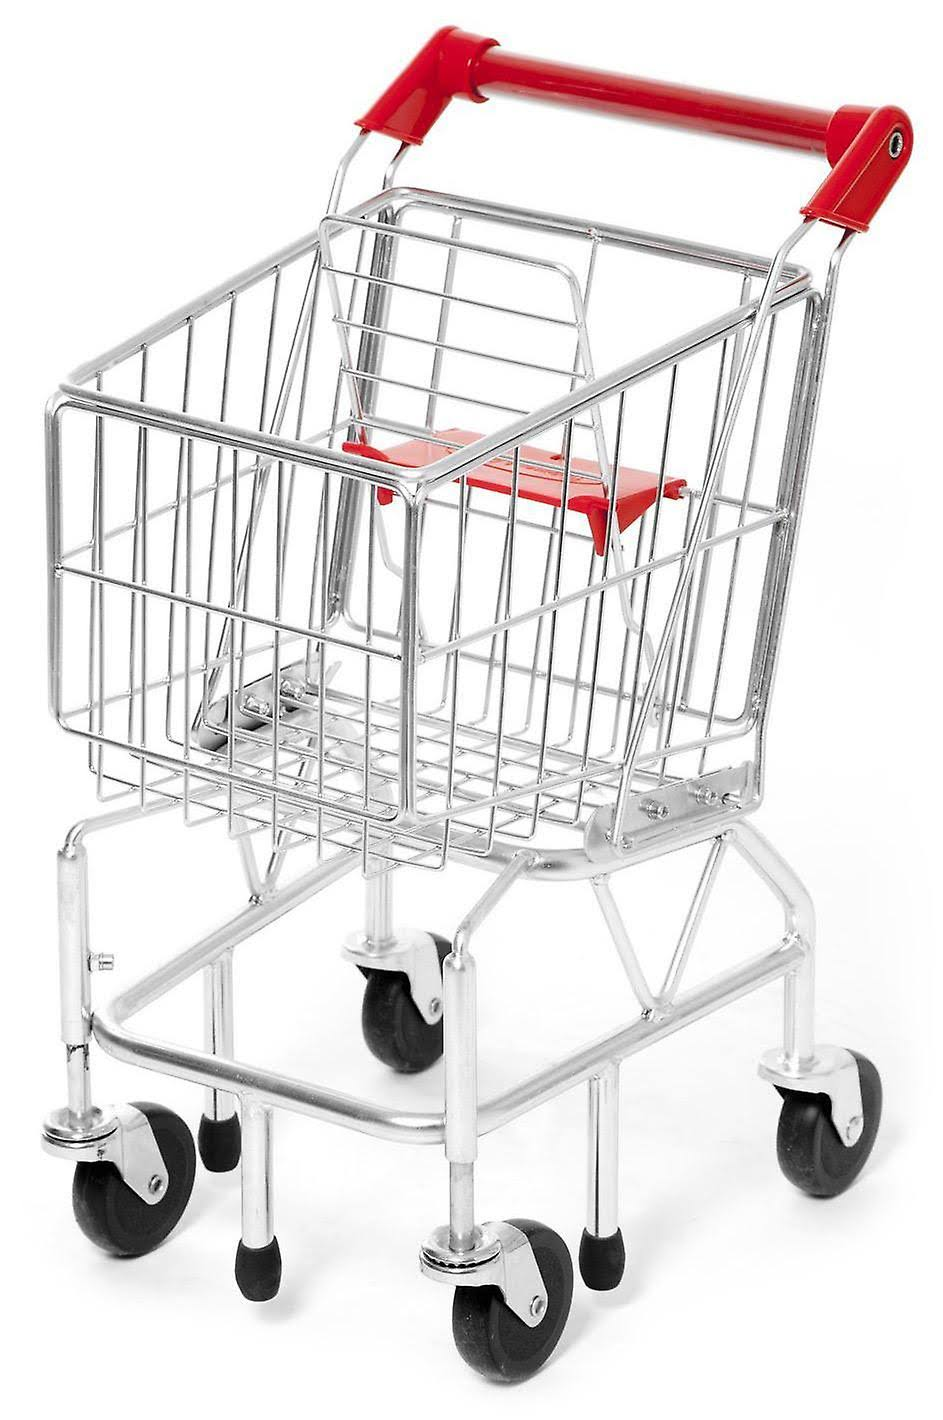 Melissa & Doug Metal Shopping Trolley Cart Toy